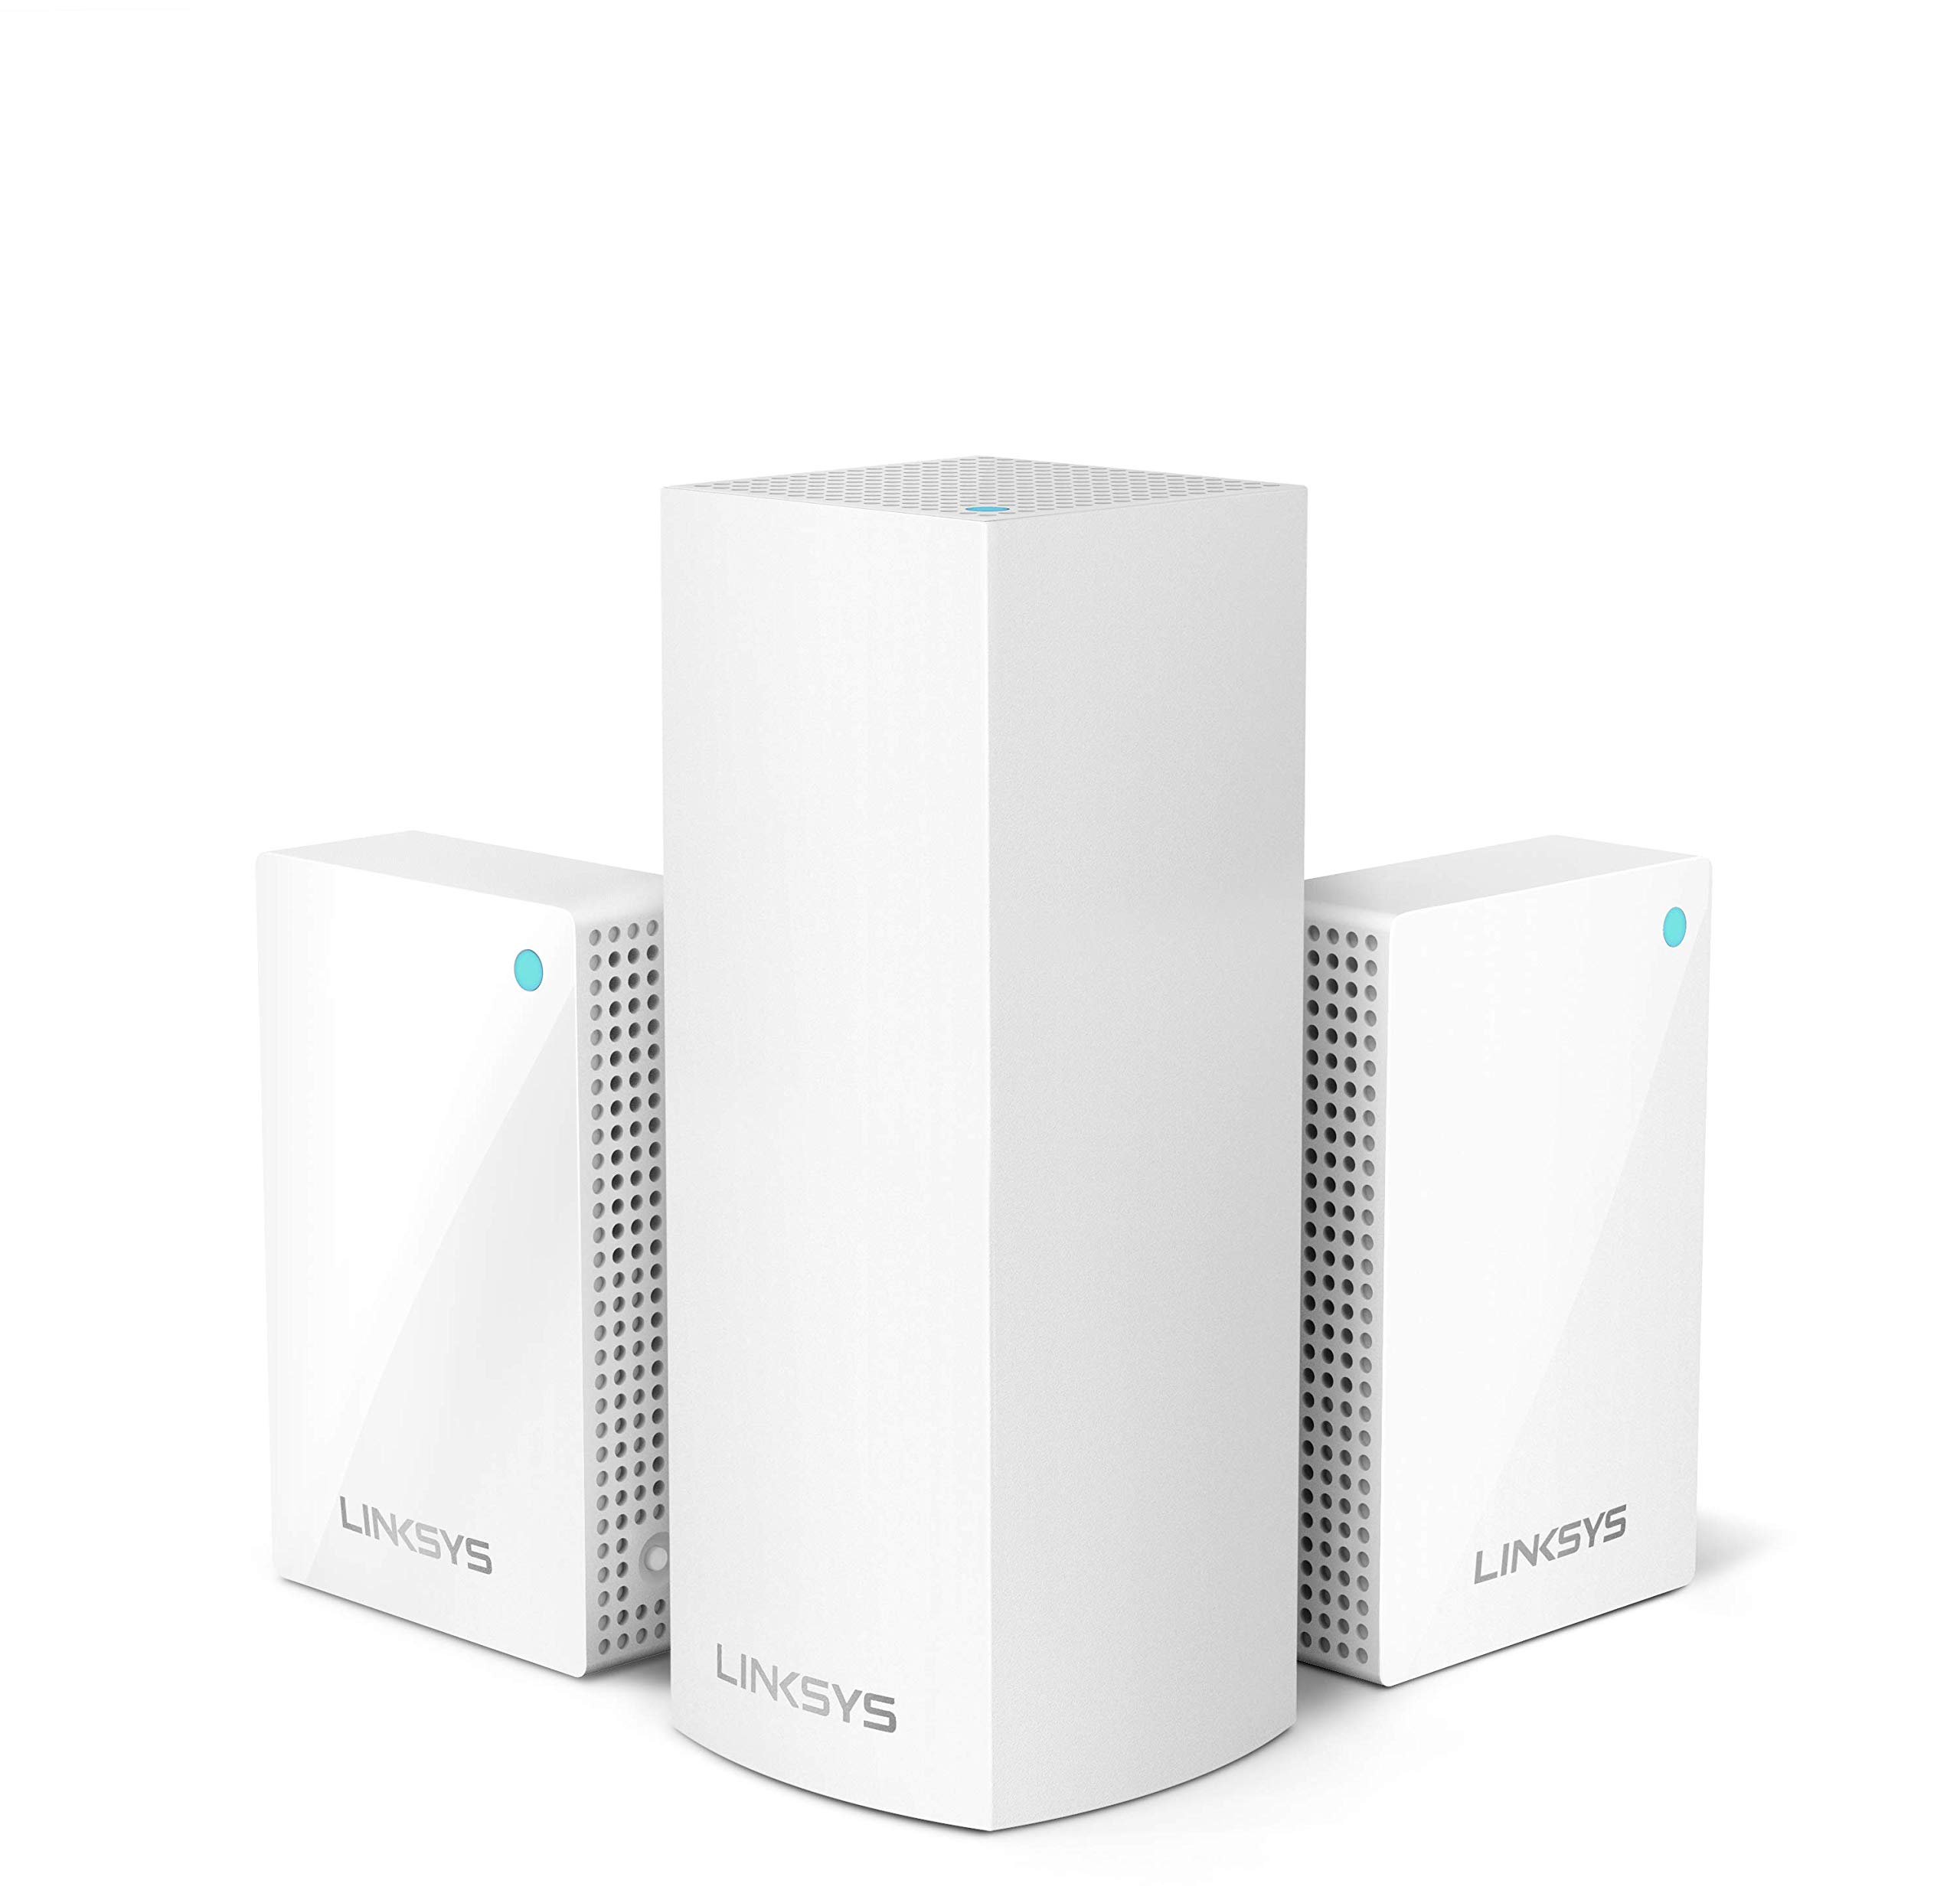 Linksys Velop Plug-in Home Mesh WiFi System Bundle (Dual/Tri-Band Combo) - WiFi Router/WiFi Extender for Whole-Home Mesh Network (3-pack, White) by Linksys